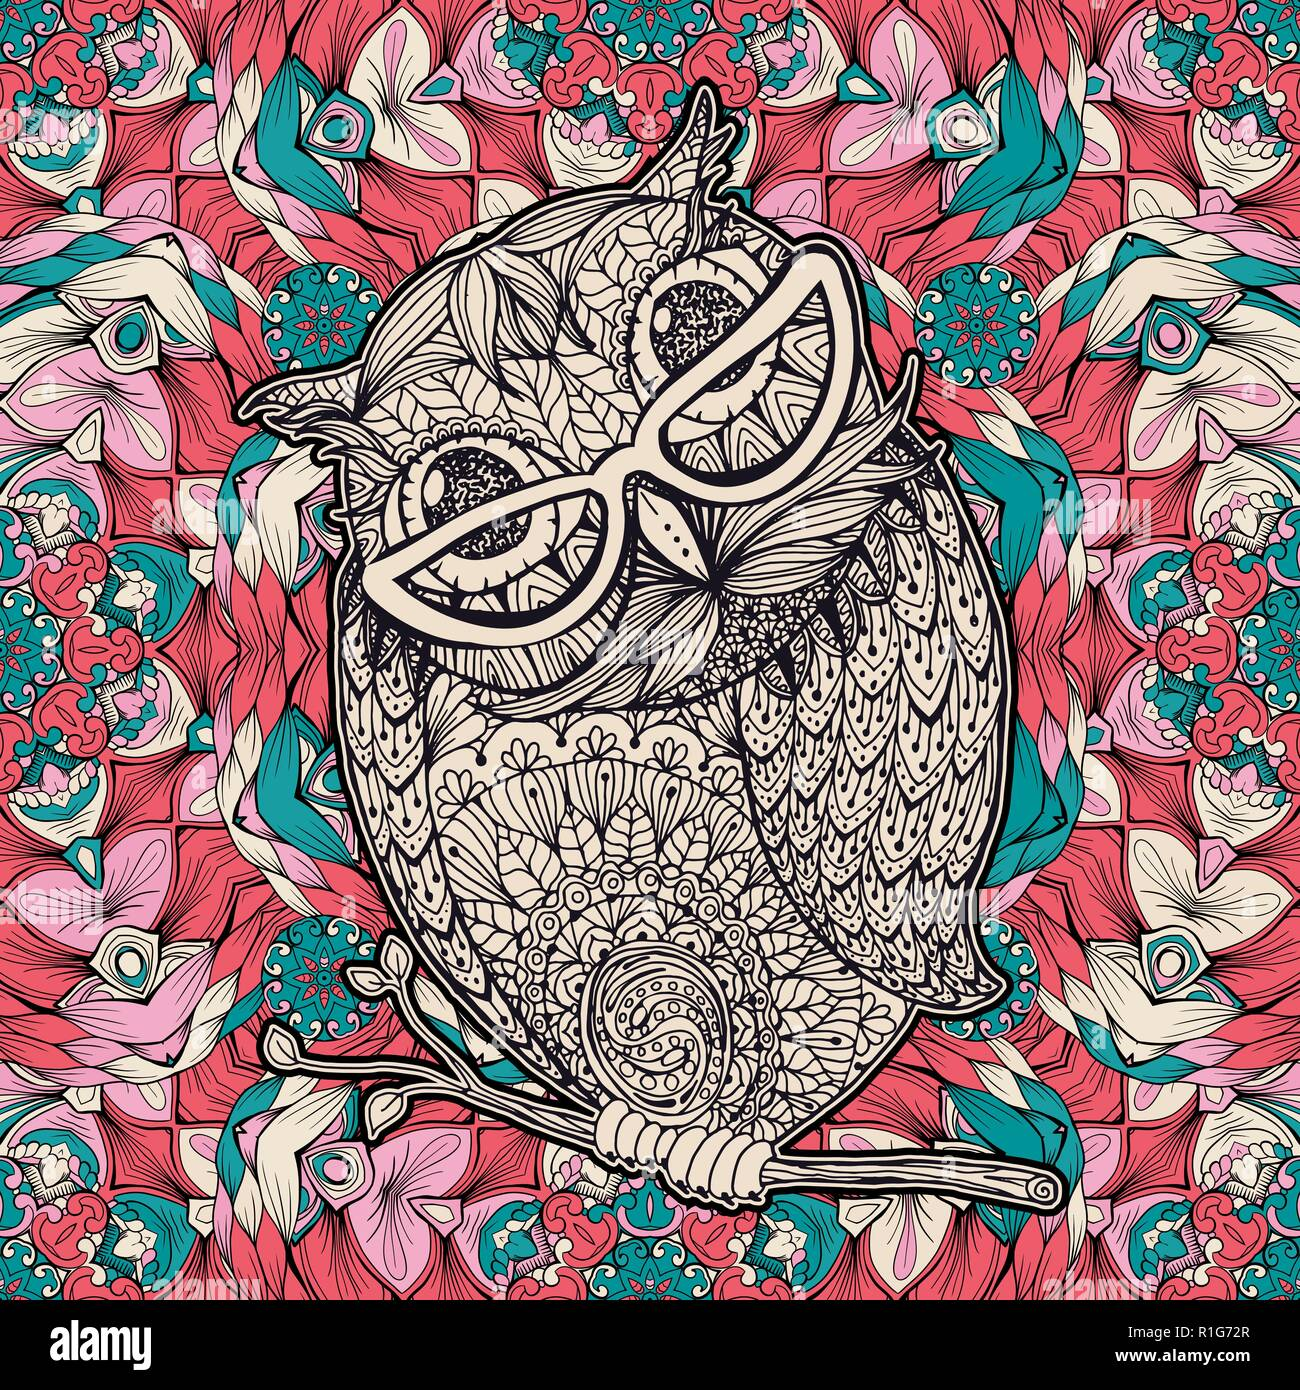 Owl With Glasses Coloring Page Or Book Cover Vector Poster Design